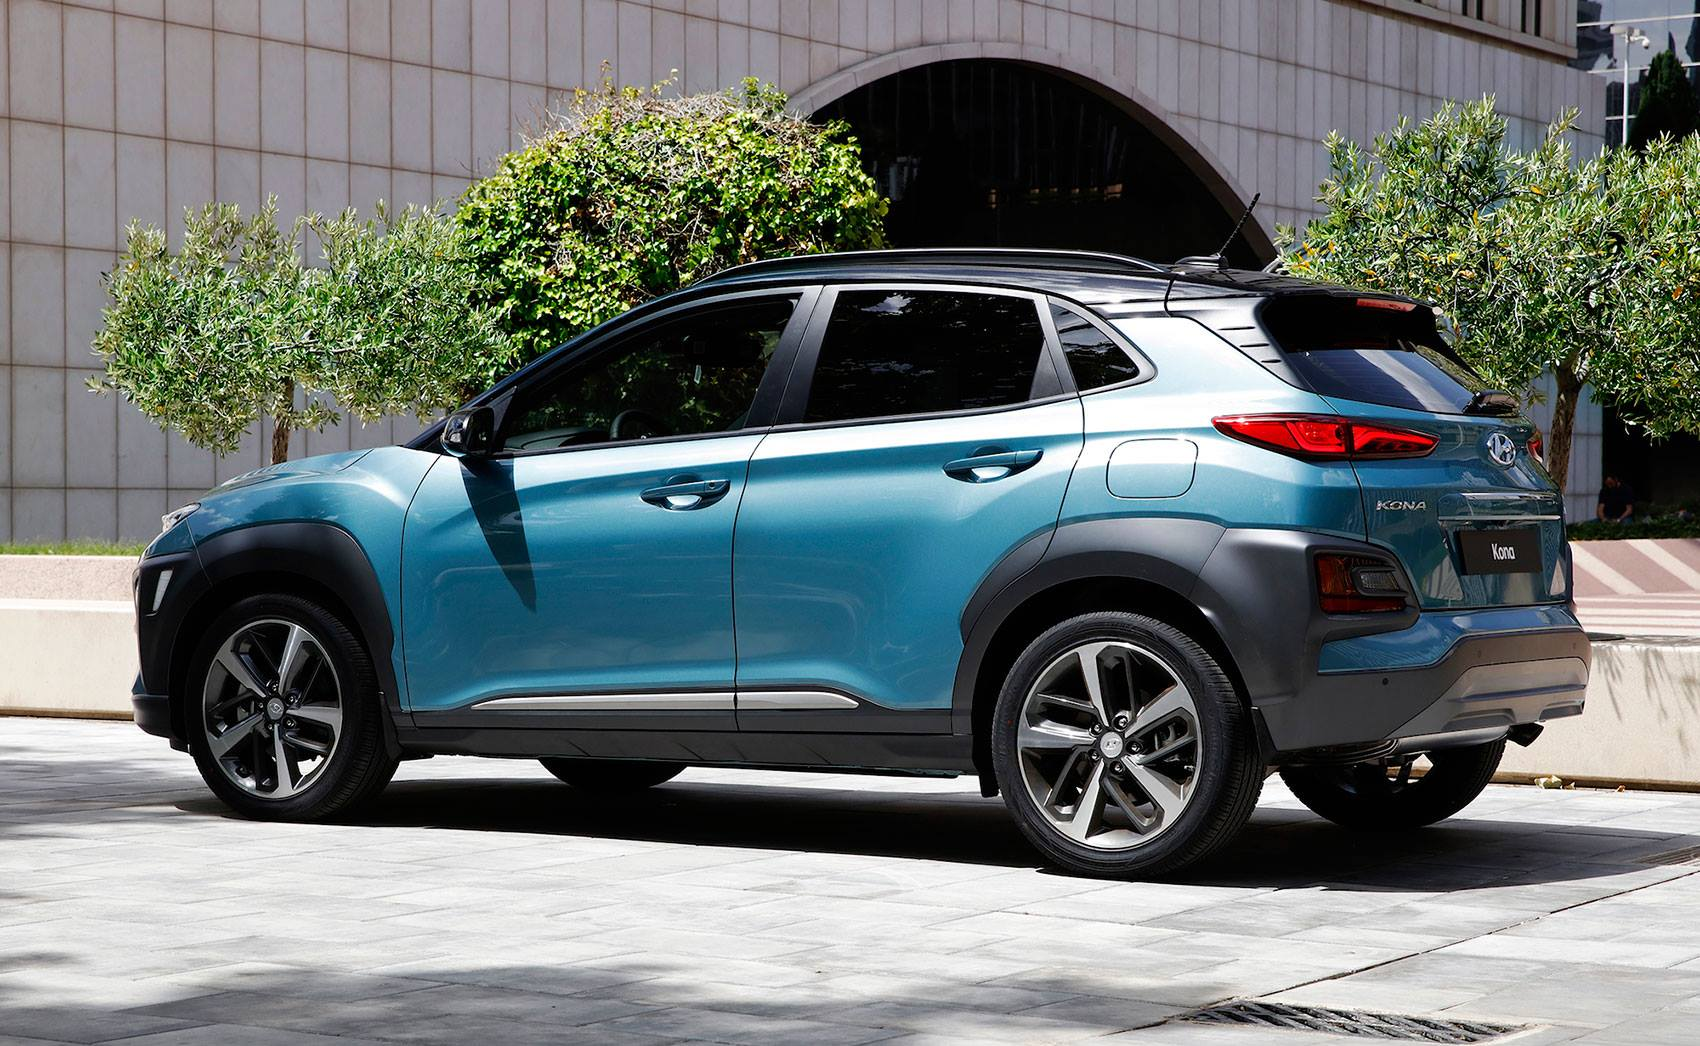 2018 Hyundai Kona Revealed It Is The Brand S Juke Fighter